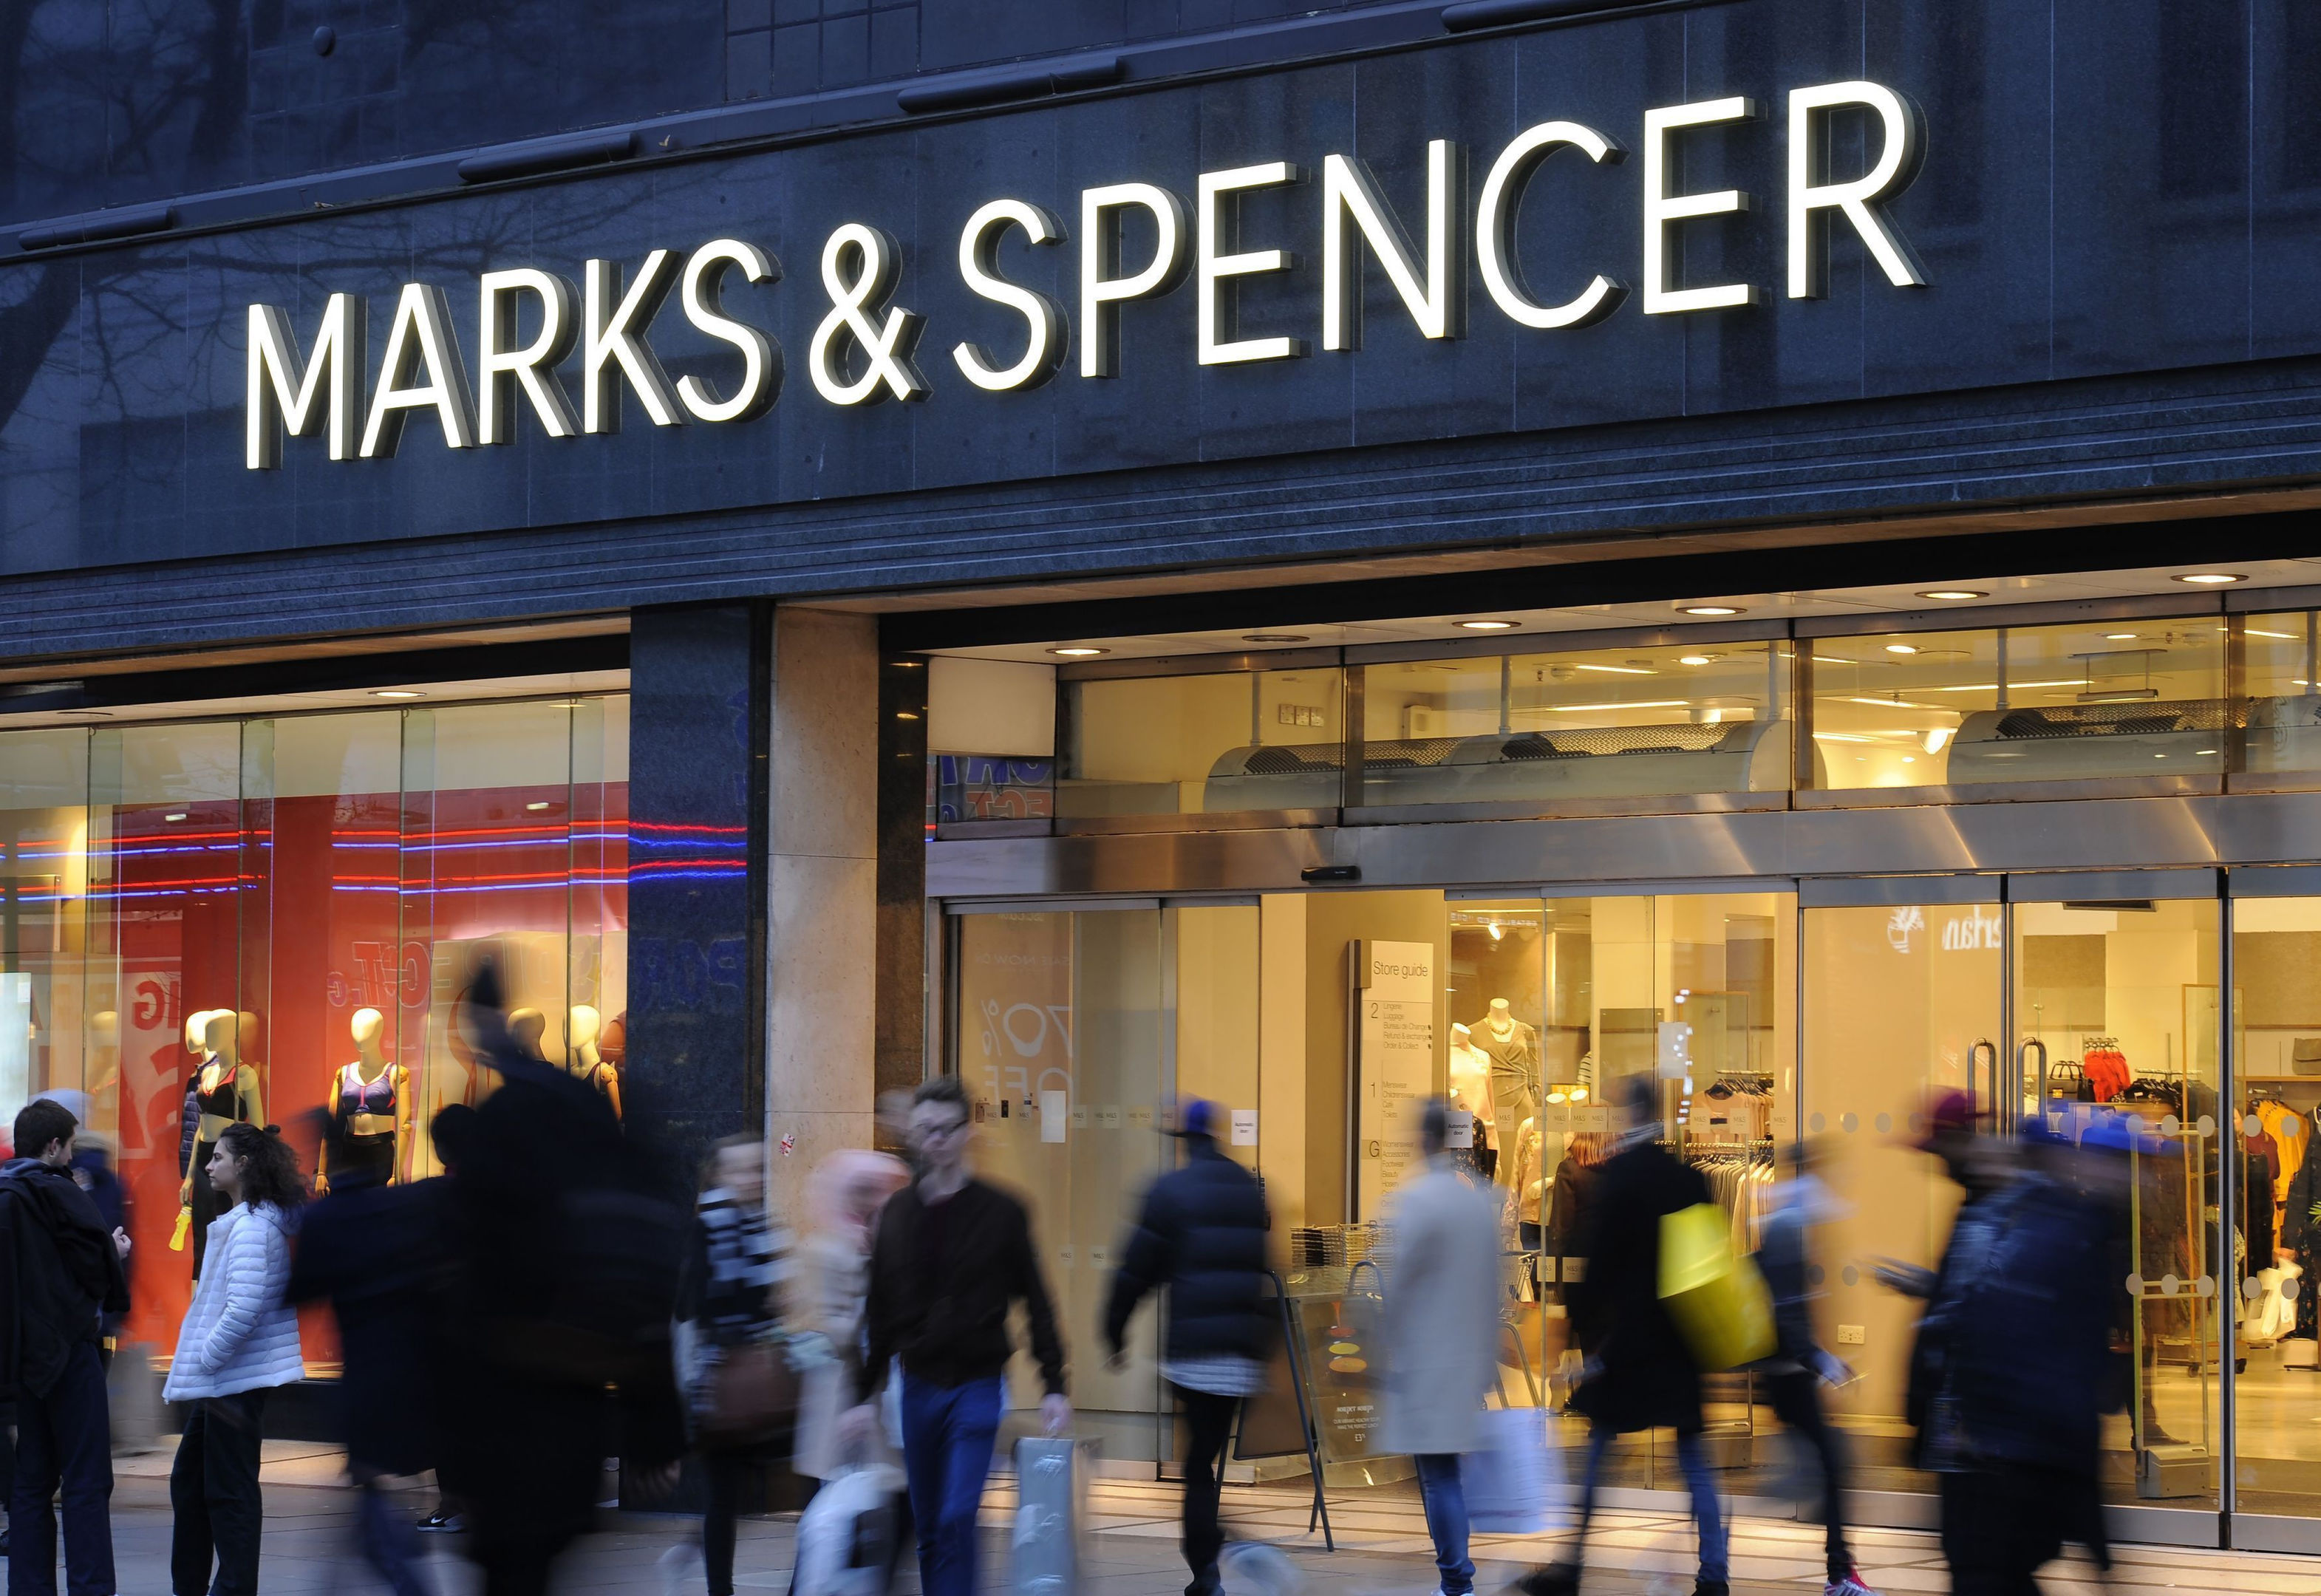 File photo dated 11/01/17 of a Marks and Spencer store as the retailer has reported a 62.1% fall in pre-tax profit to £66.8 million in the year to March 31. PRESS ASSOCIATION Photo. Issue date: Wednesday May 23, 2018. See PA story CITY Marks. Photo credit should read: Charlotte Ball/PA Wire